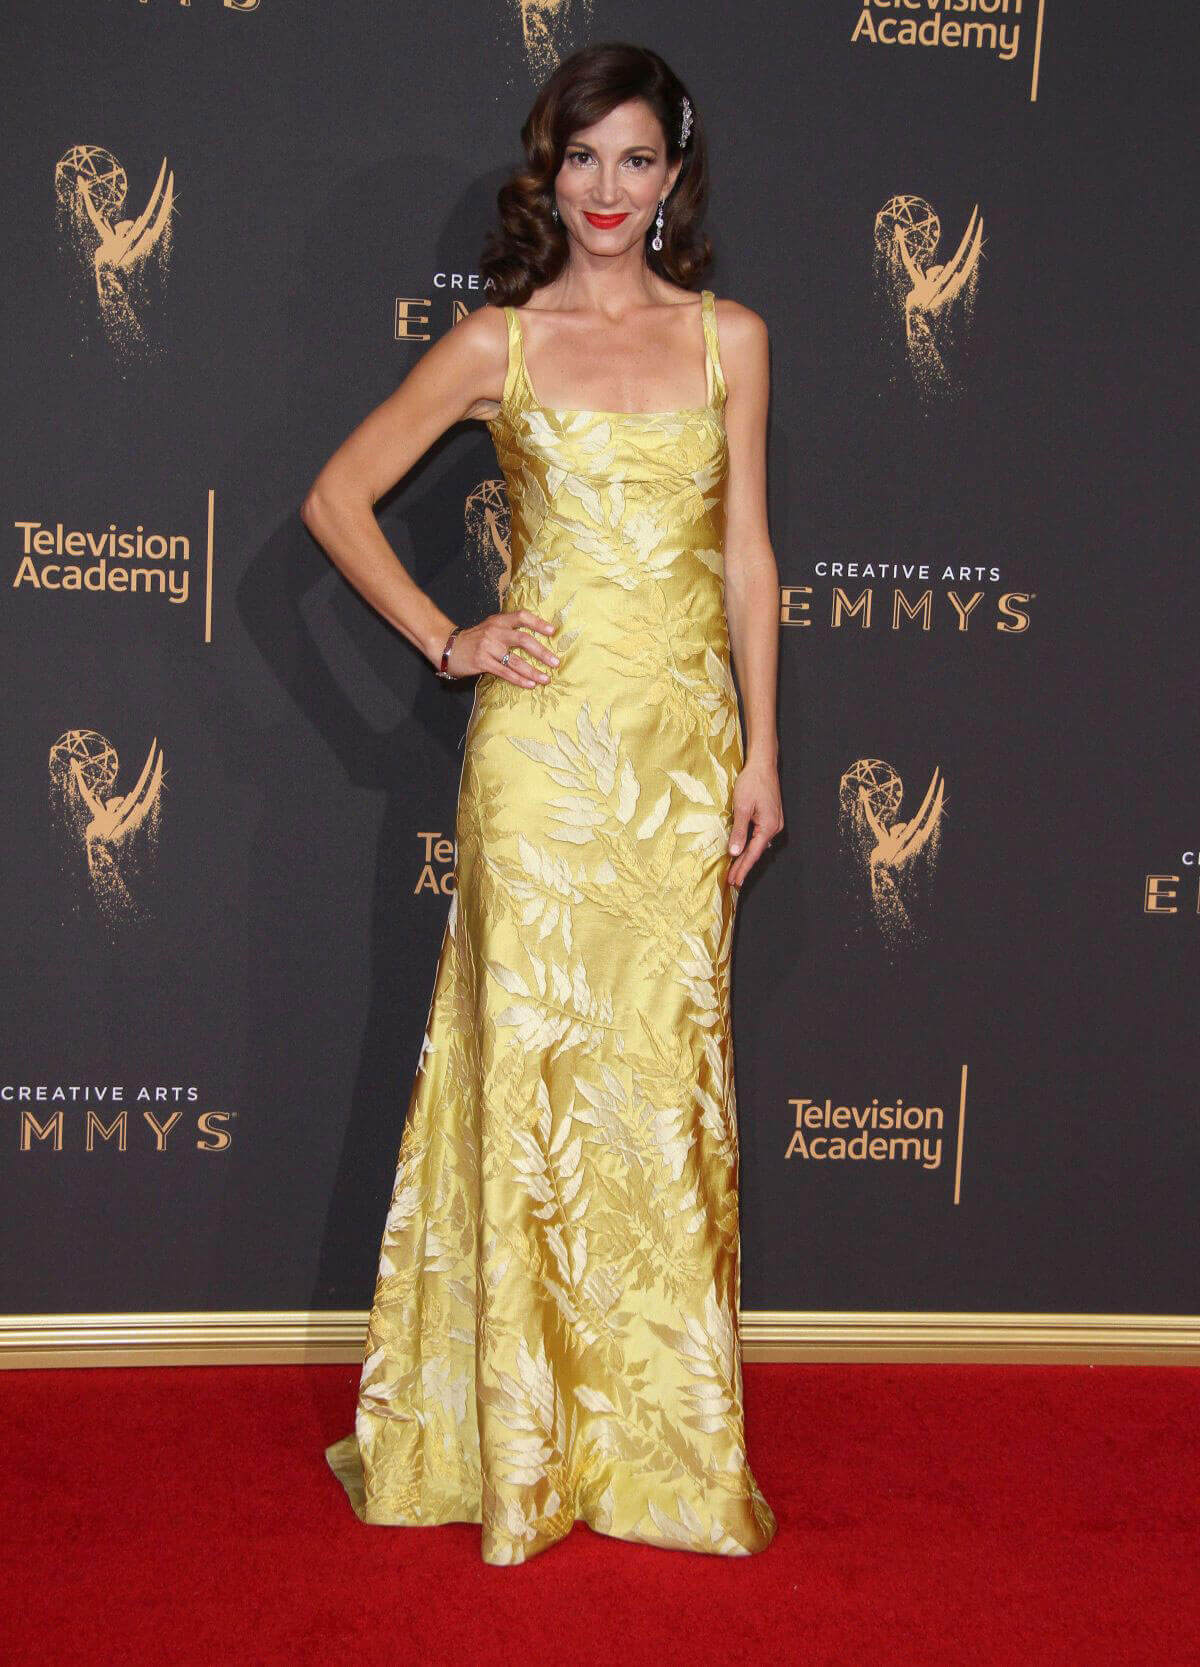 Jama Williamson at Creative Arts Emmy Awards in Los Angeles